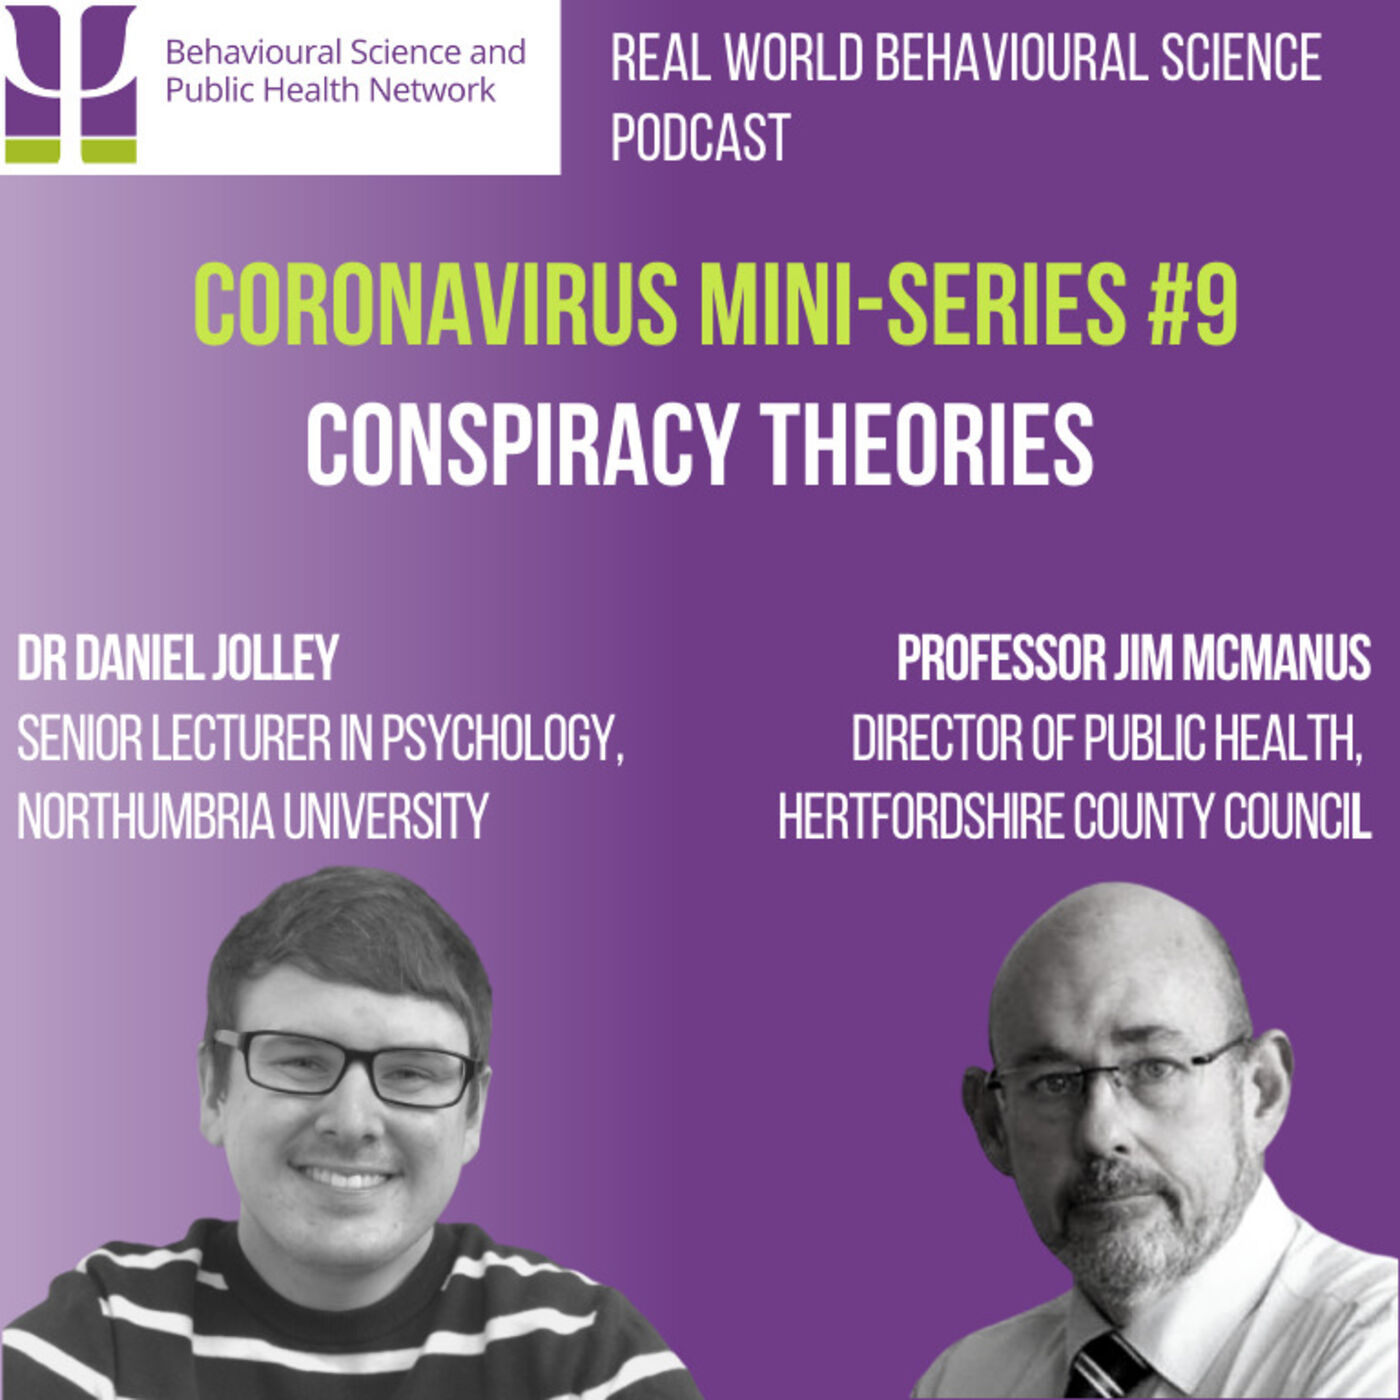 CORONAVIRUS Mini-Series #9 (15th Dec) Conspiracy Theories - Prof Jim McManus & Dr Daniel Jolley